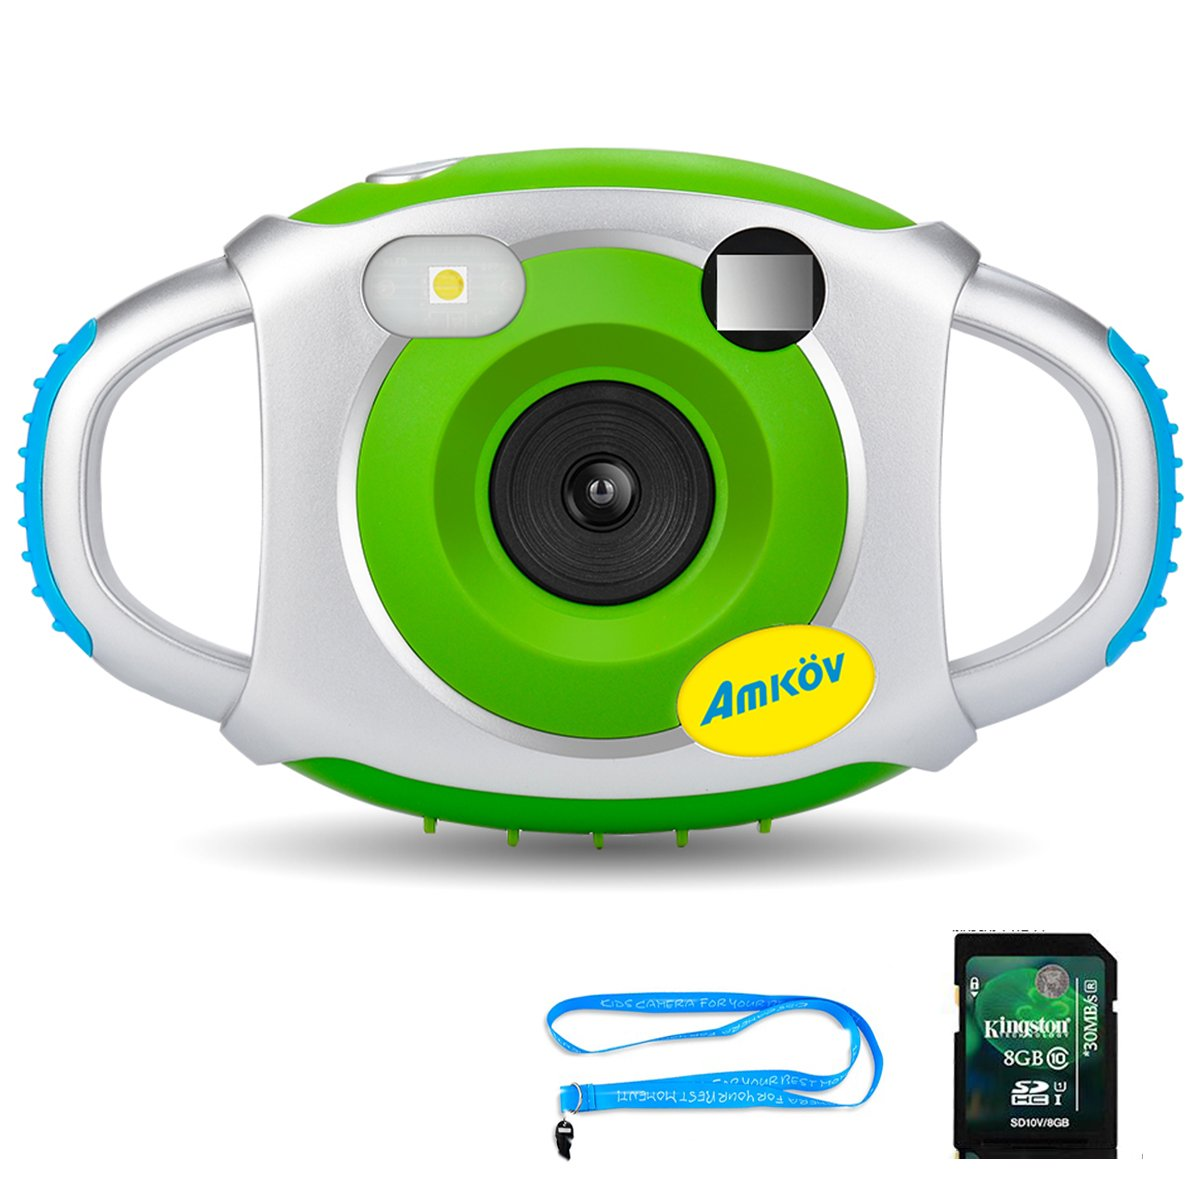 Kids Camera with 8G SD Card, Amkov Electronic Camera for Kids, Children Creative Digital Camera, 5Mp 1.44 Inch TFT Display Video Recording